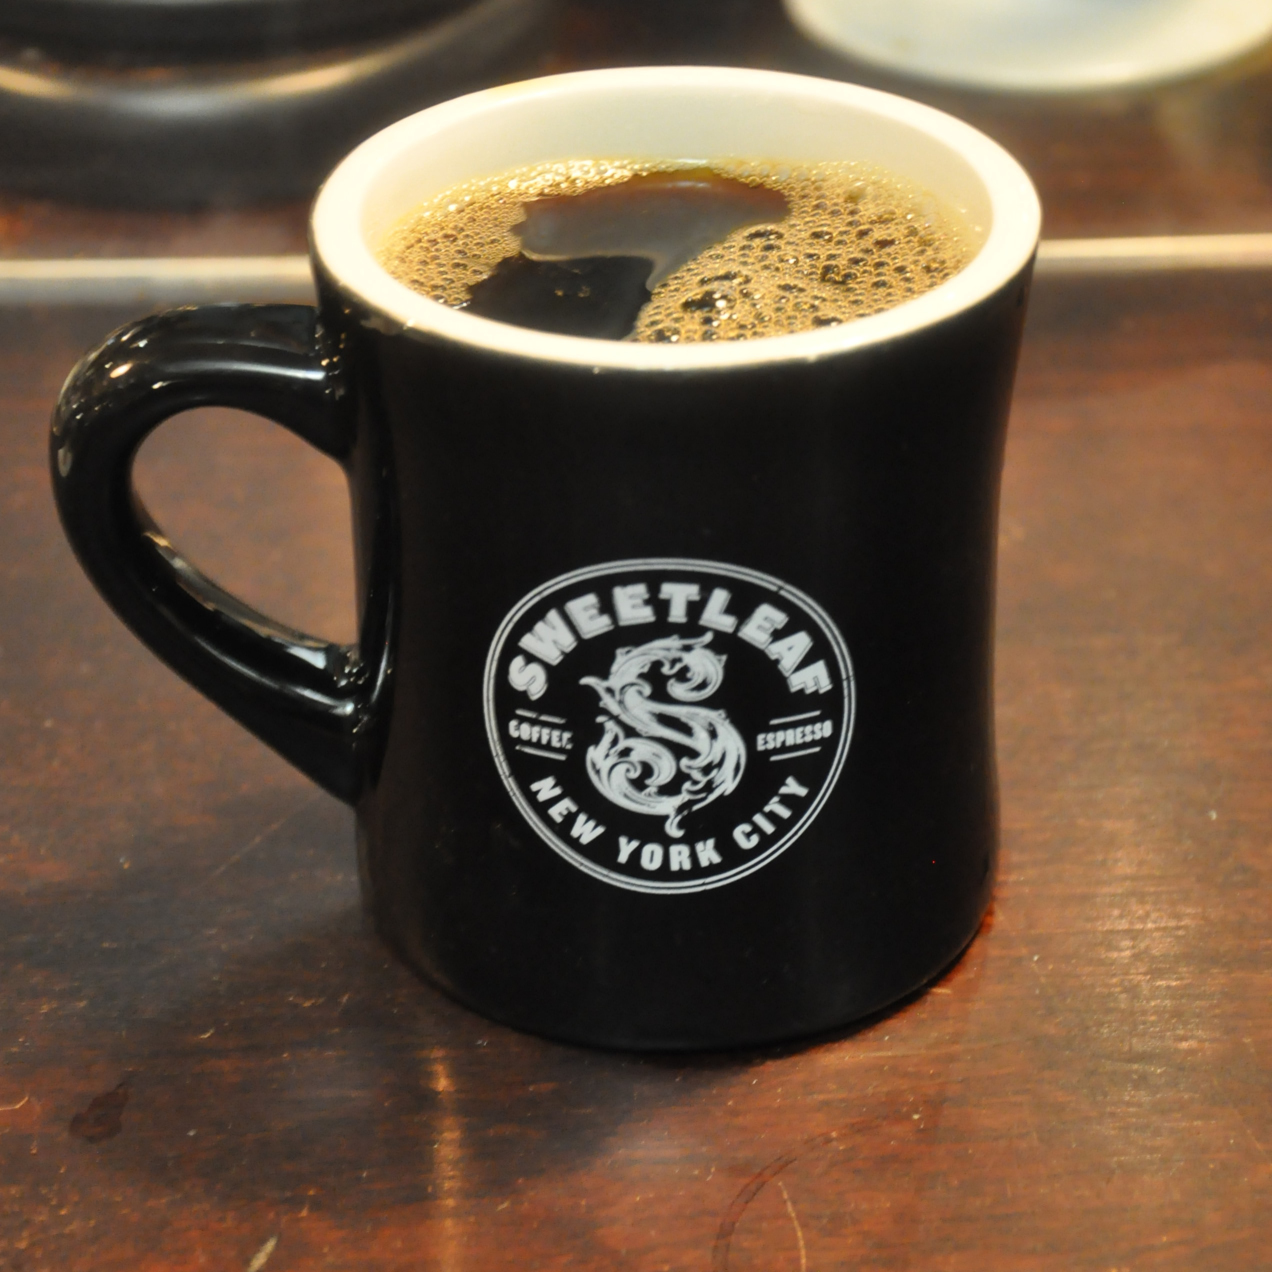 A Mug Of Black Filter Coffee In Clic American Diner Adorned With